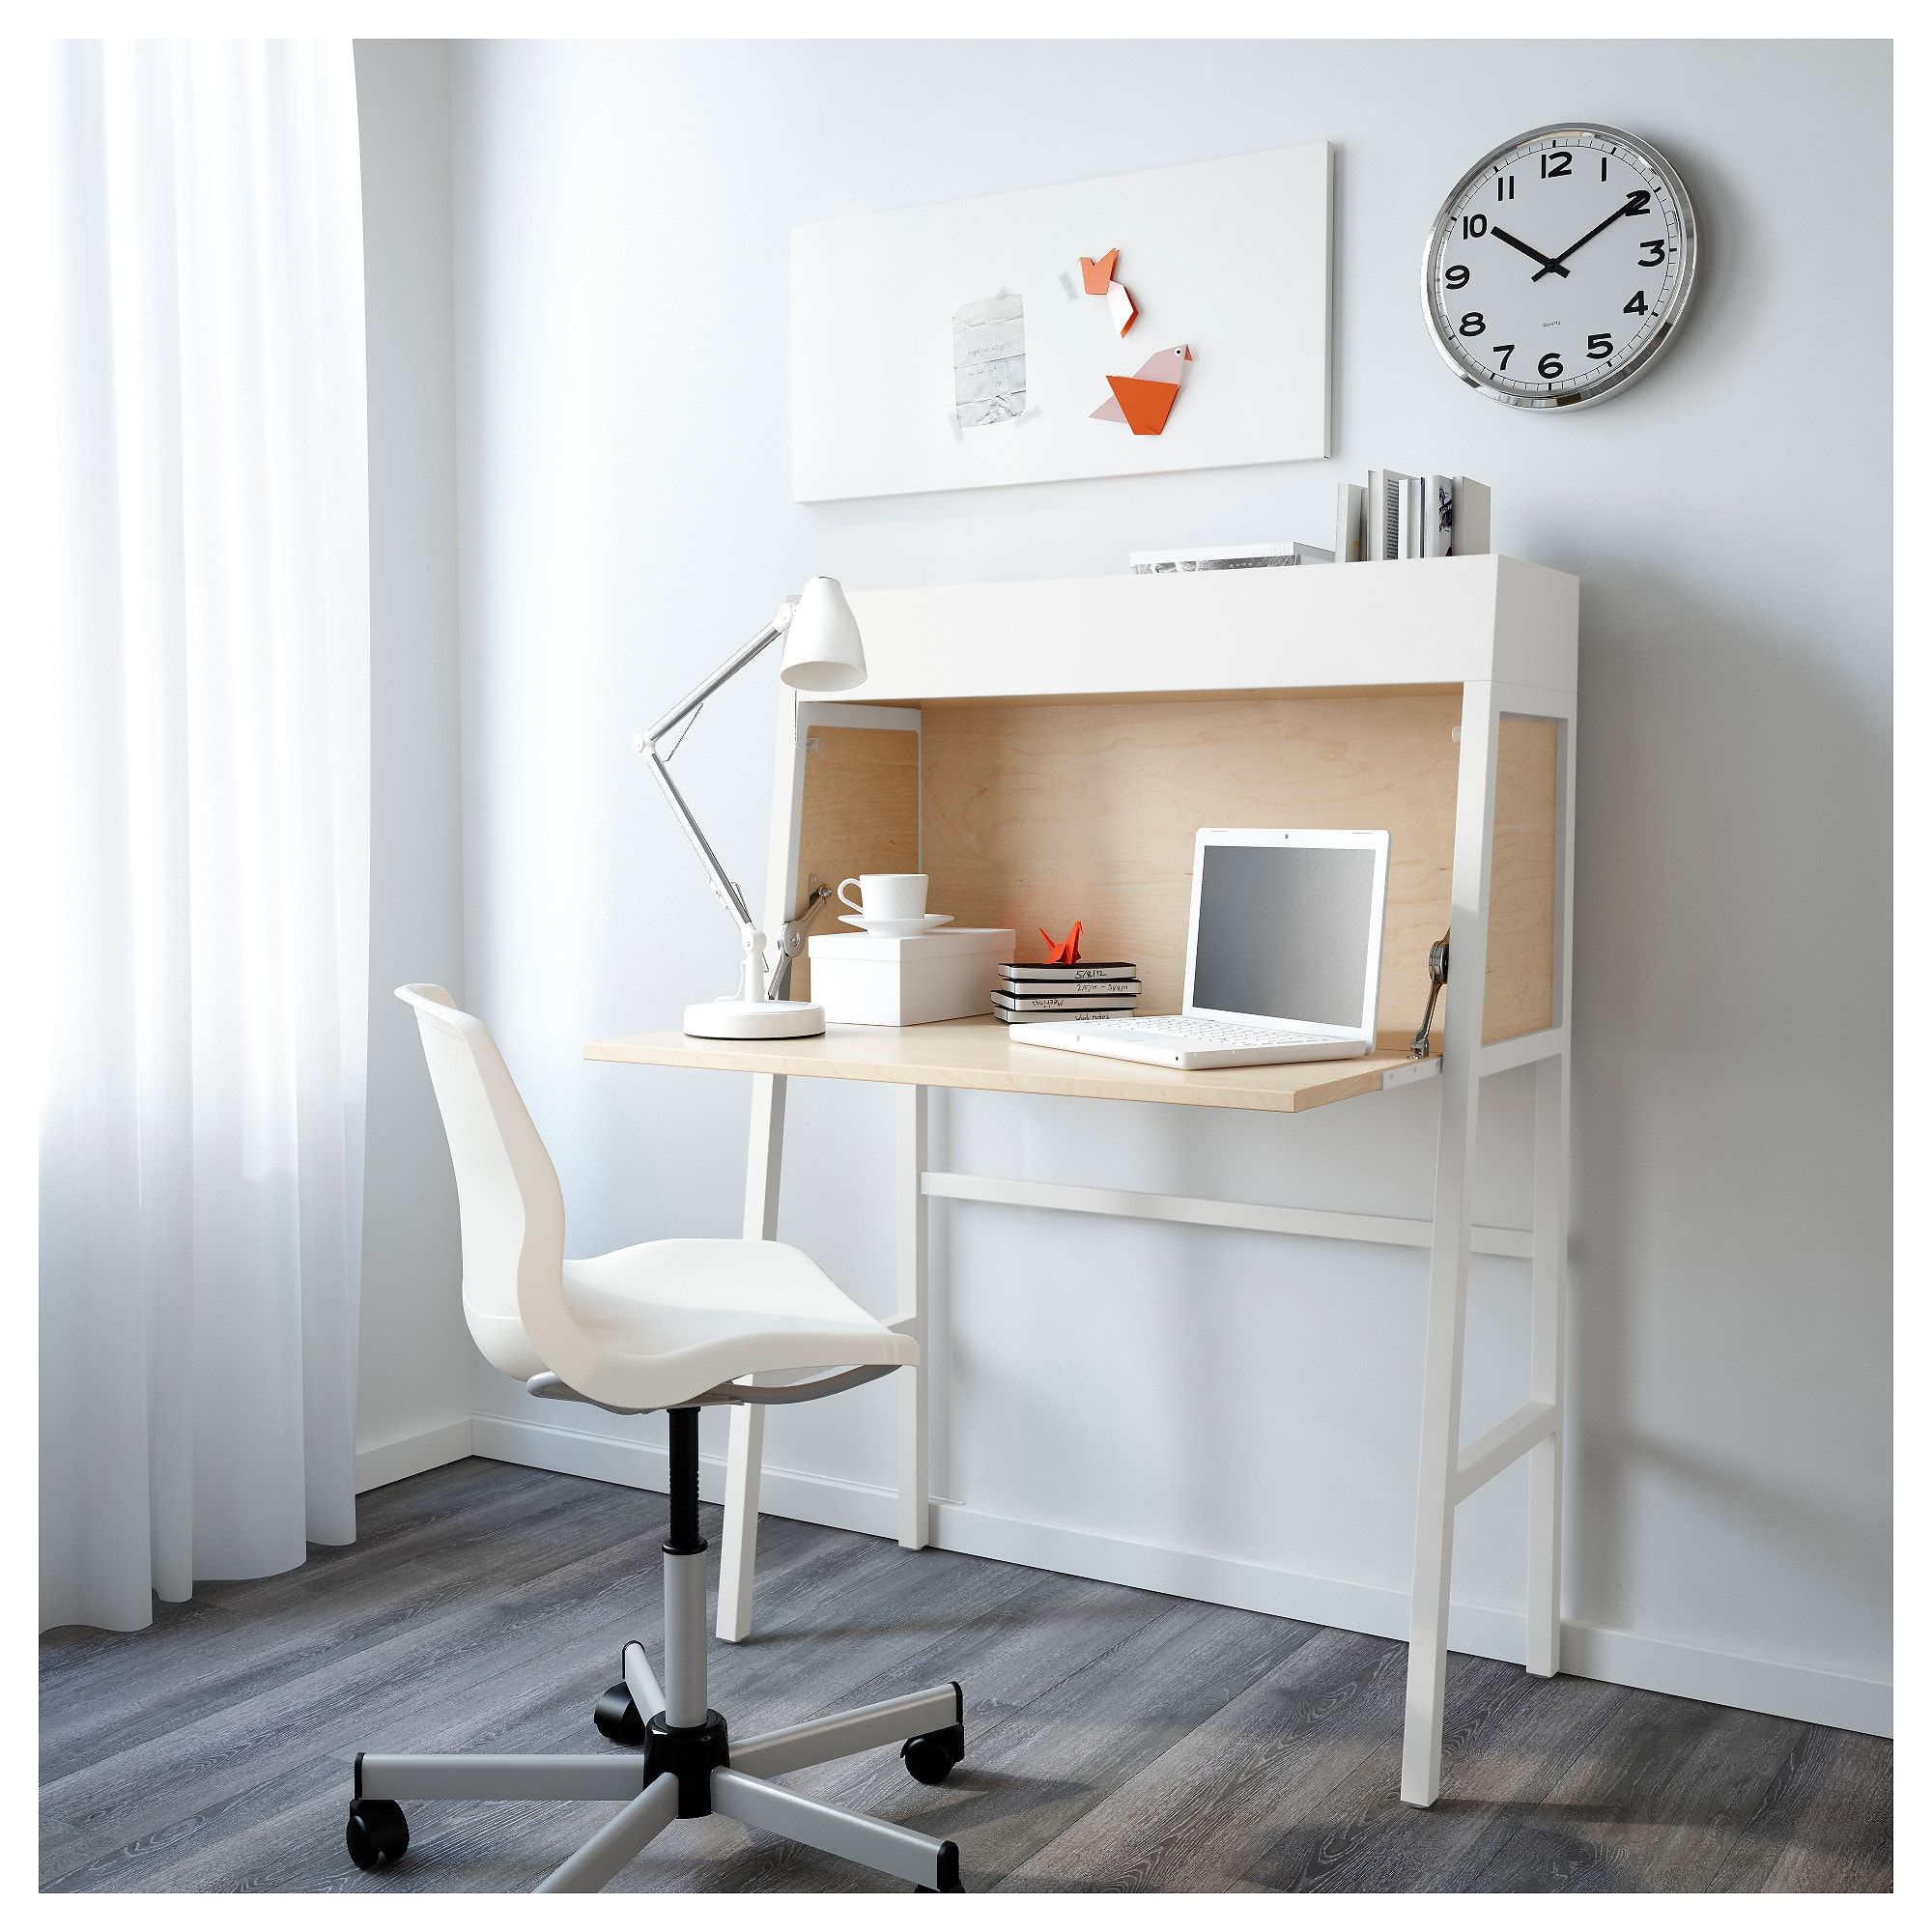 The Best Desks For Small Spaces When You Don T Have The Room For One Desks For Small Spaces Ikea Small Spaces Ikea Ps 2014